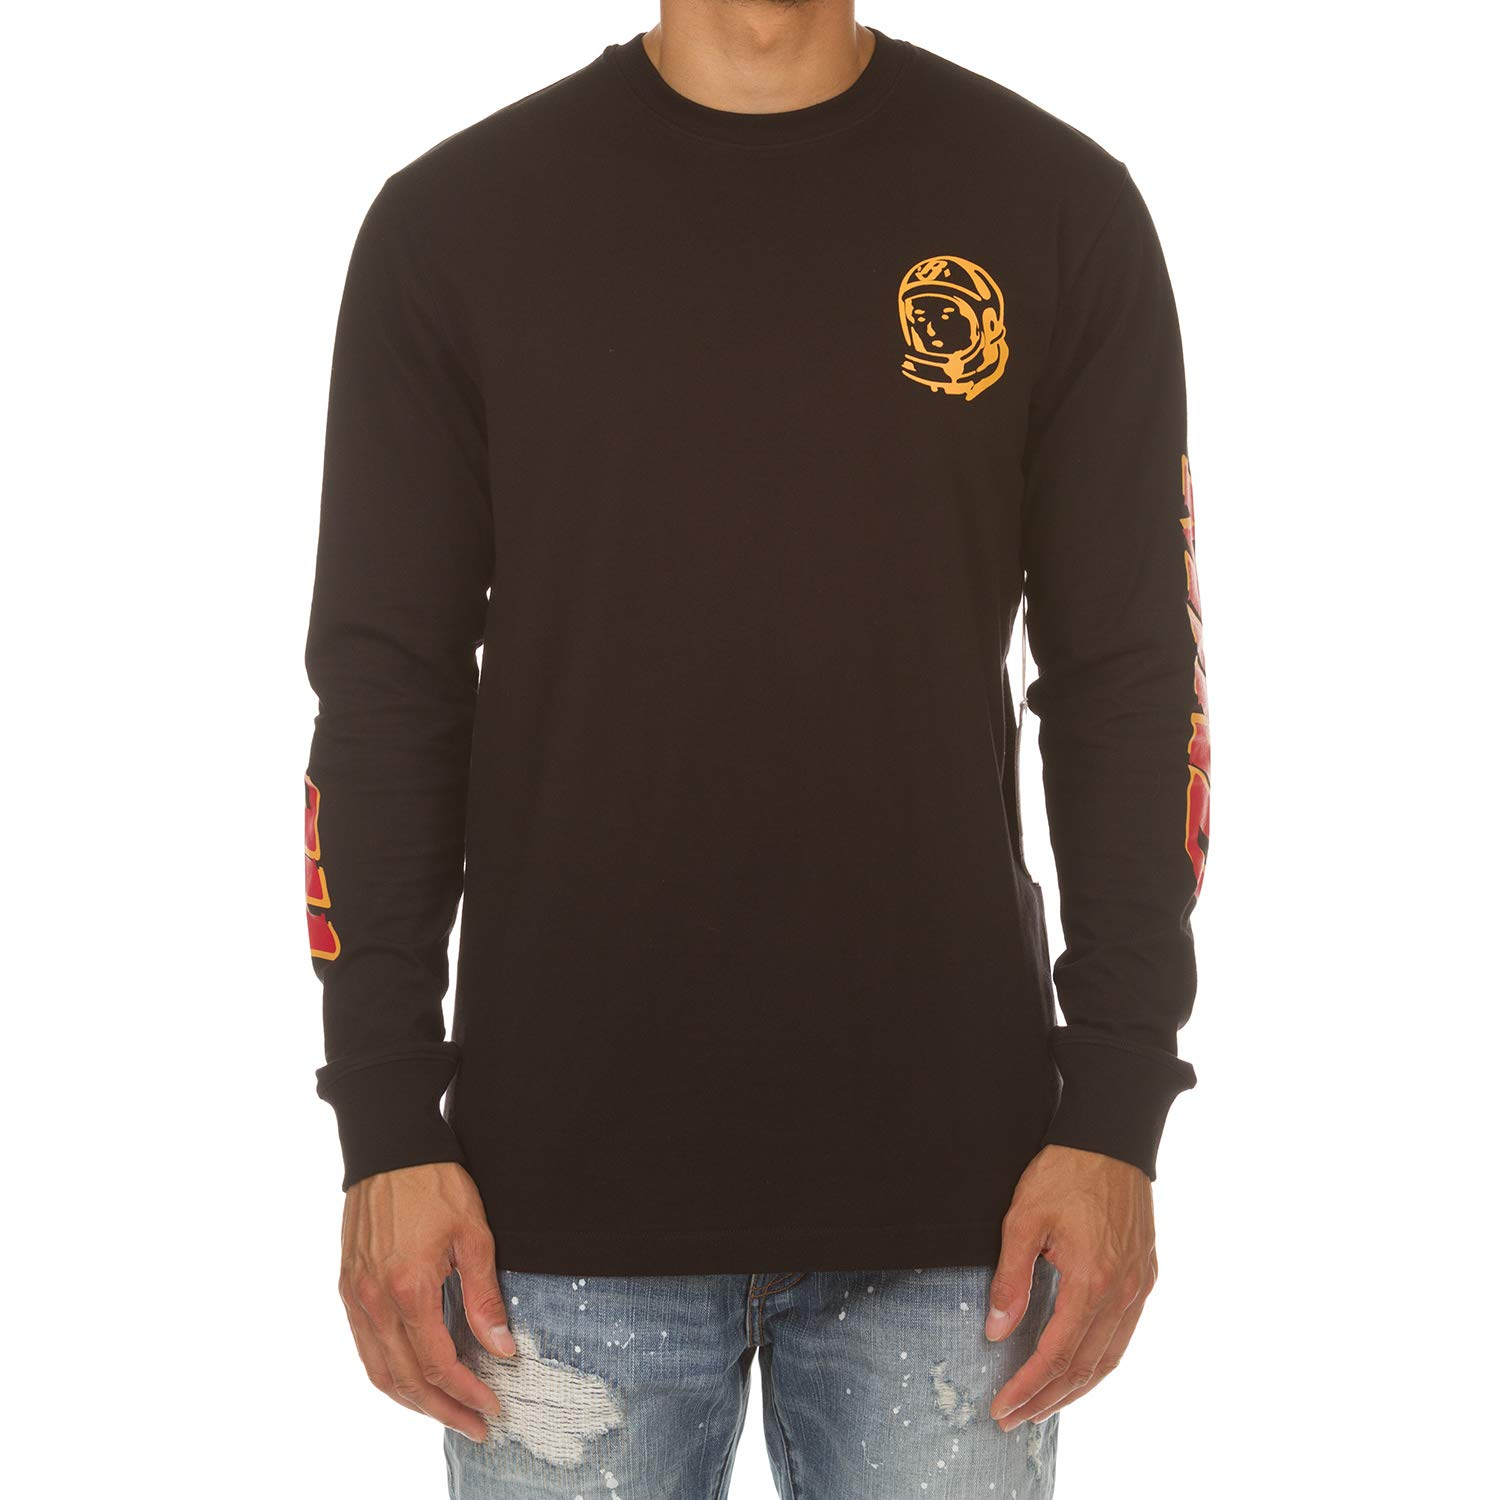 Men's Clothing Clothing, Shoes & Accessories Hearty Billionaire Boys Club Small Jumper